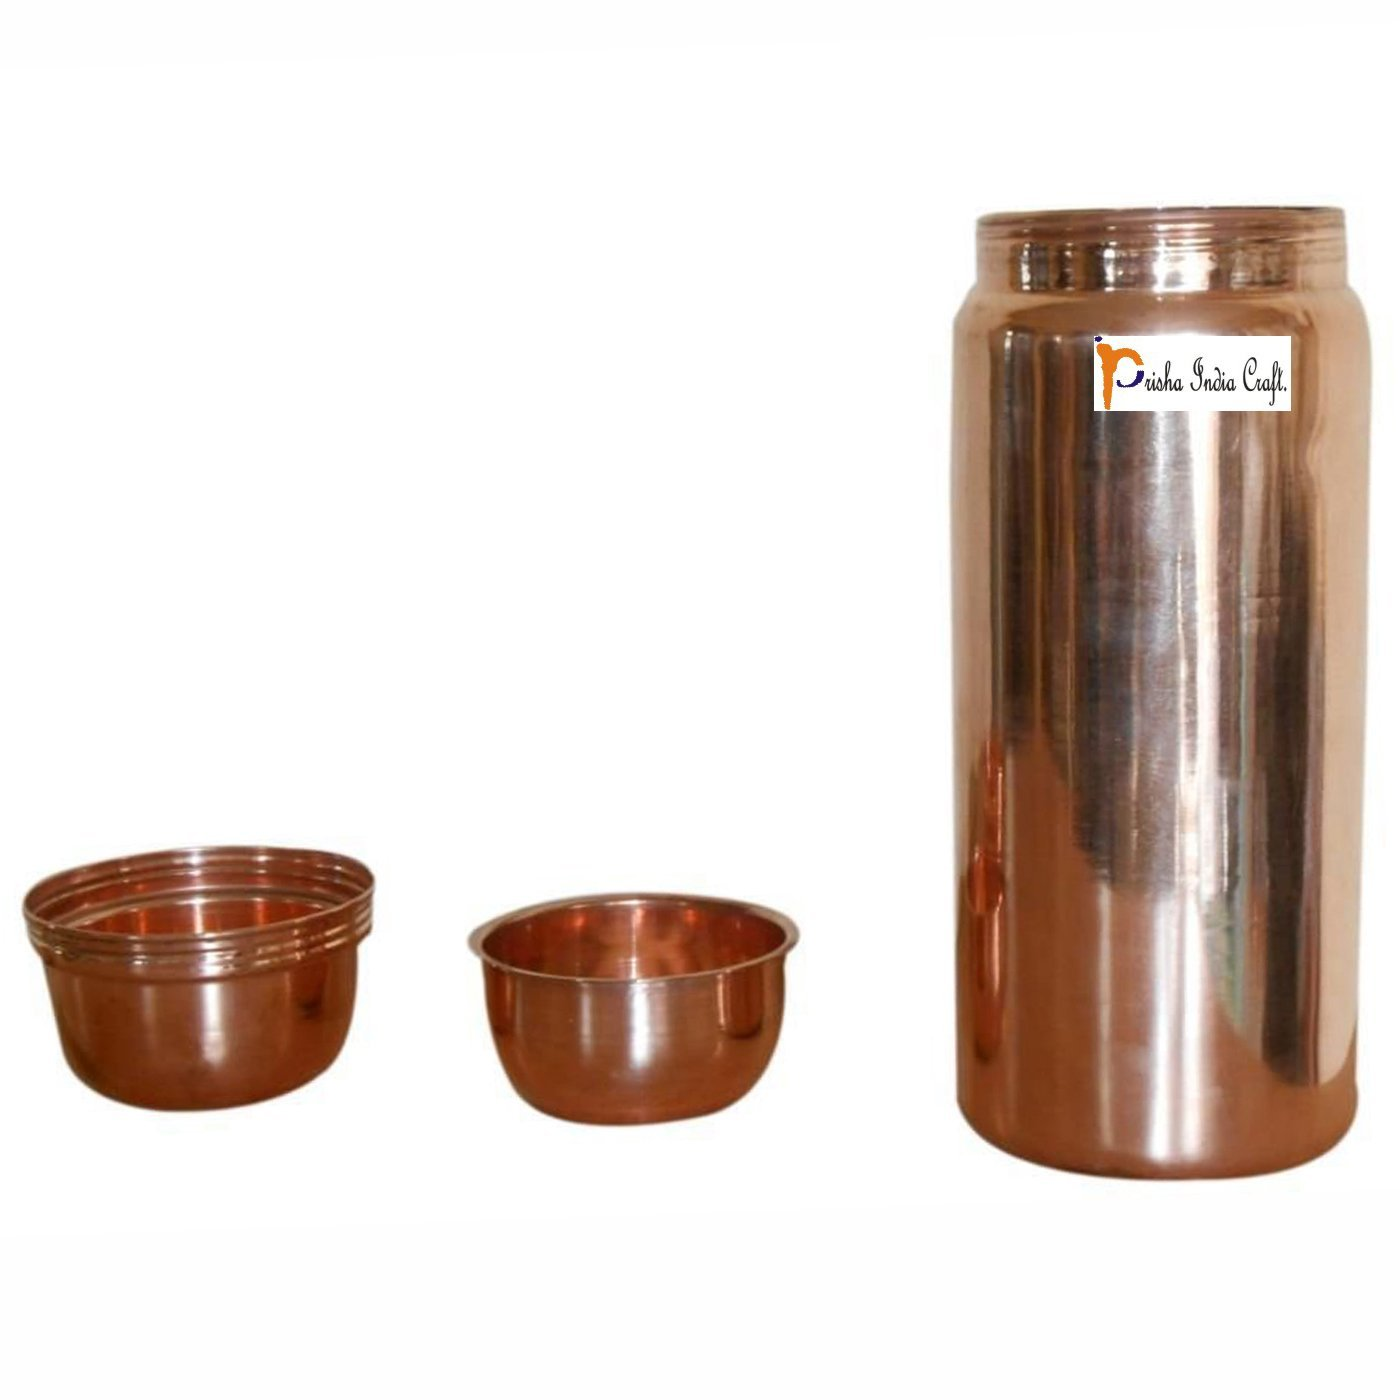 Prisha India Craft Thermos Design Pure Copper Bottle, Drinking Water, Fridge Bottles, Travel Essential, Joint Free, 1800 ML/60 Ounce